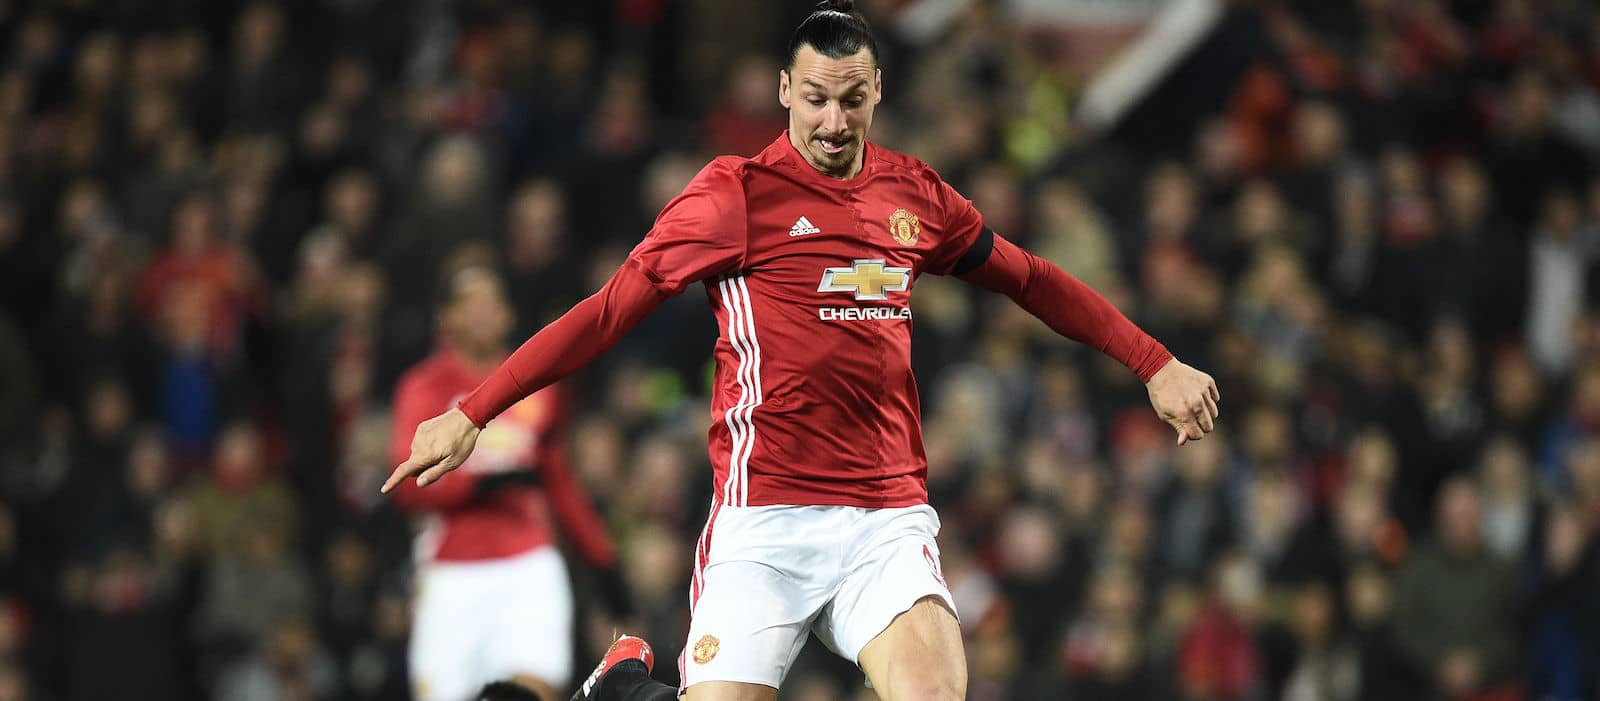 Paul Merson: Manchester United will not give Zlatan